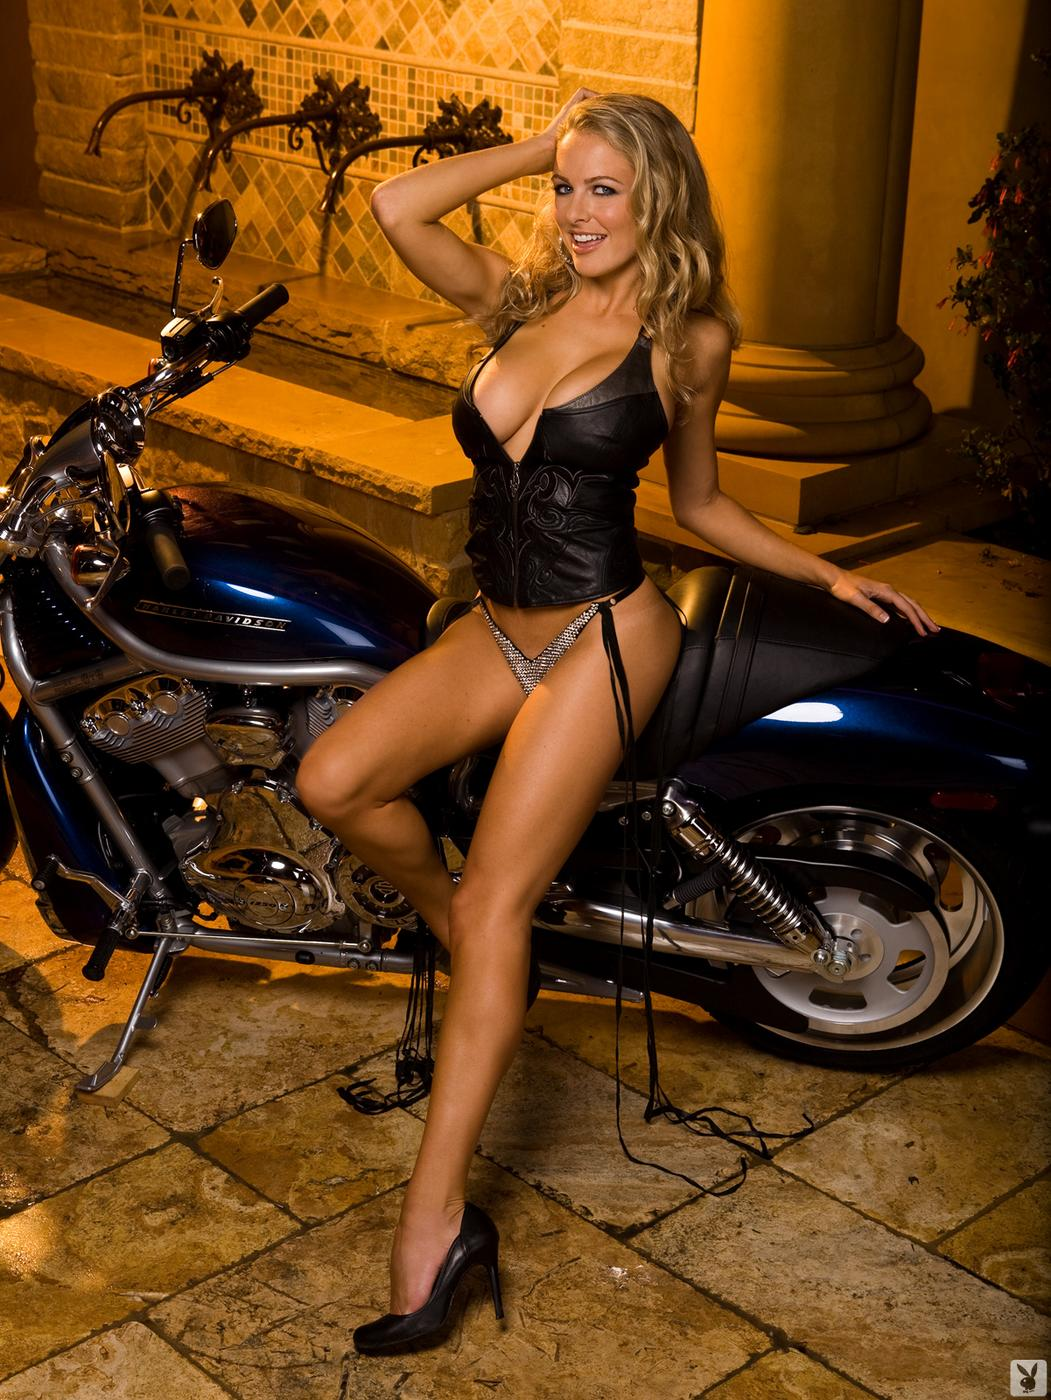 Hots Free Nude Motorcycle Wallpaper Png